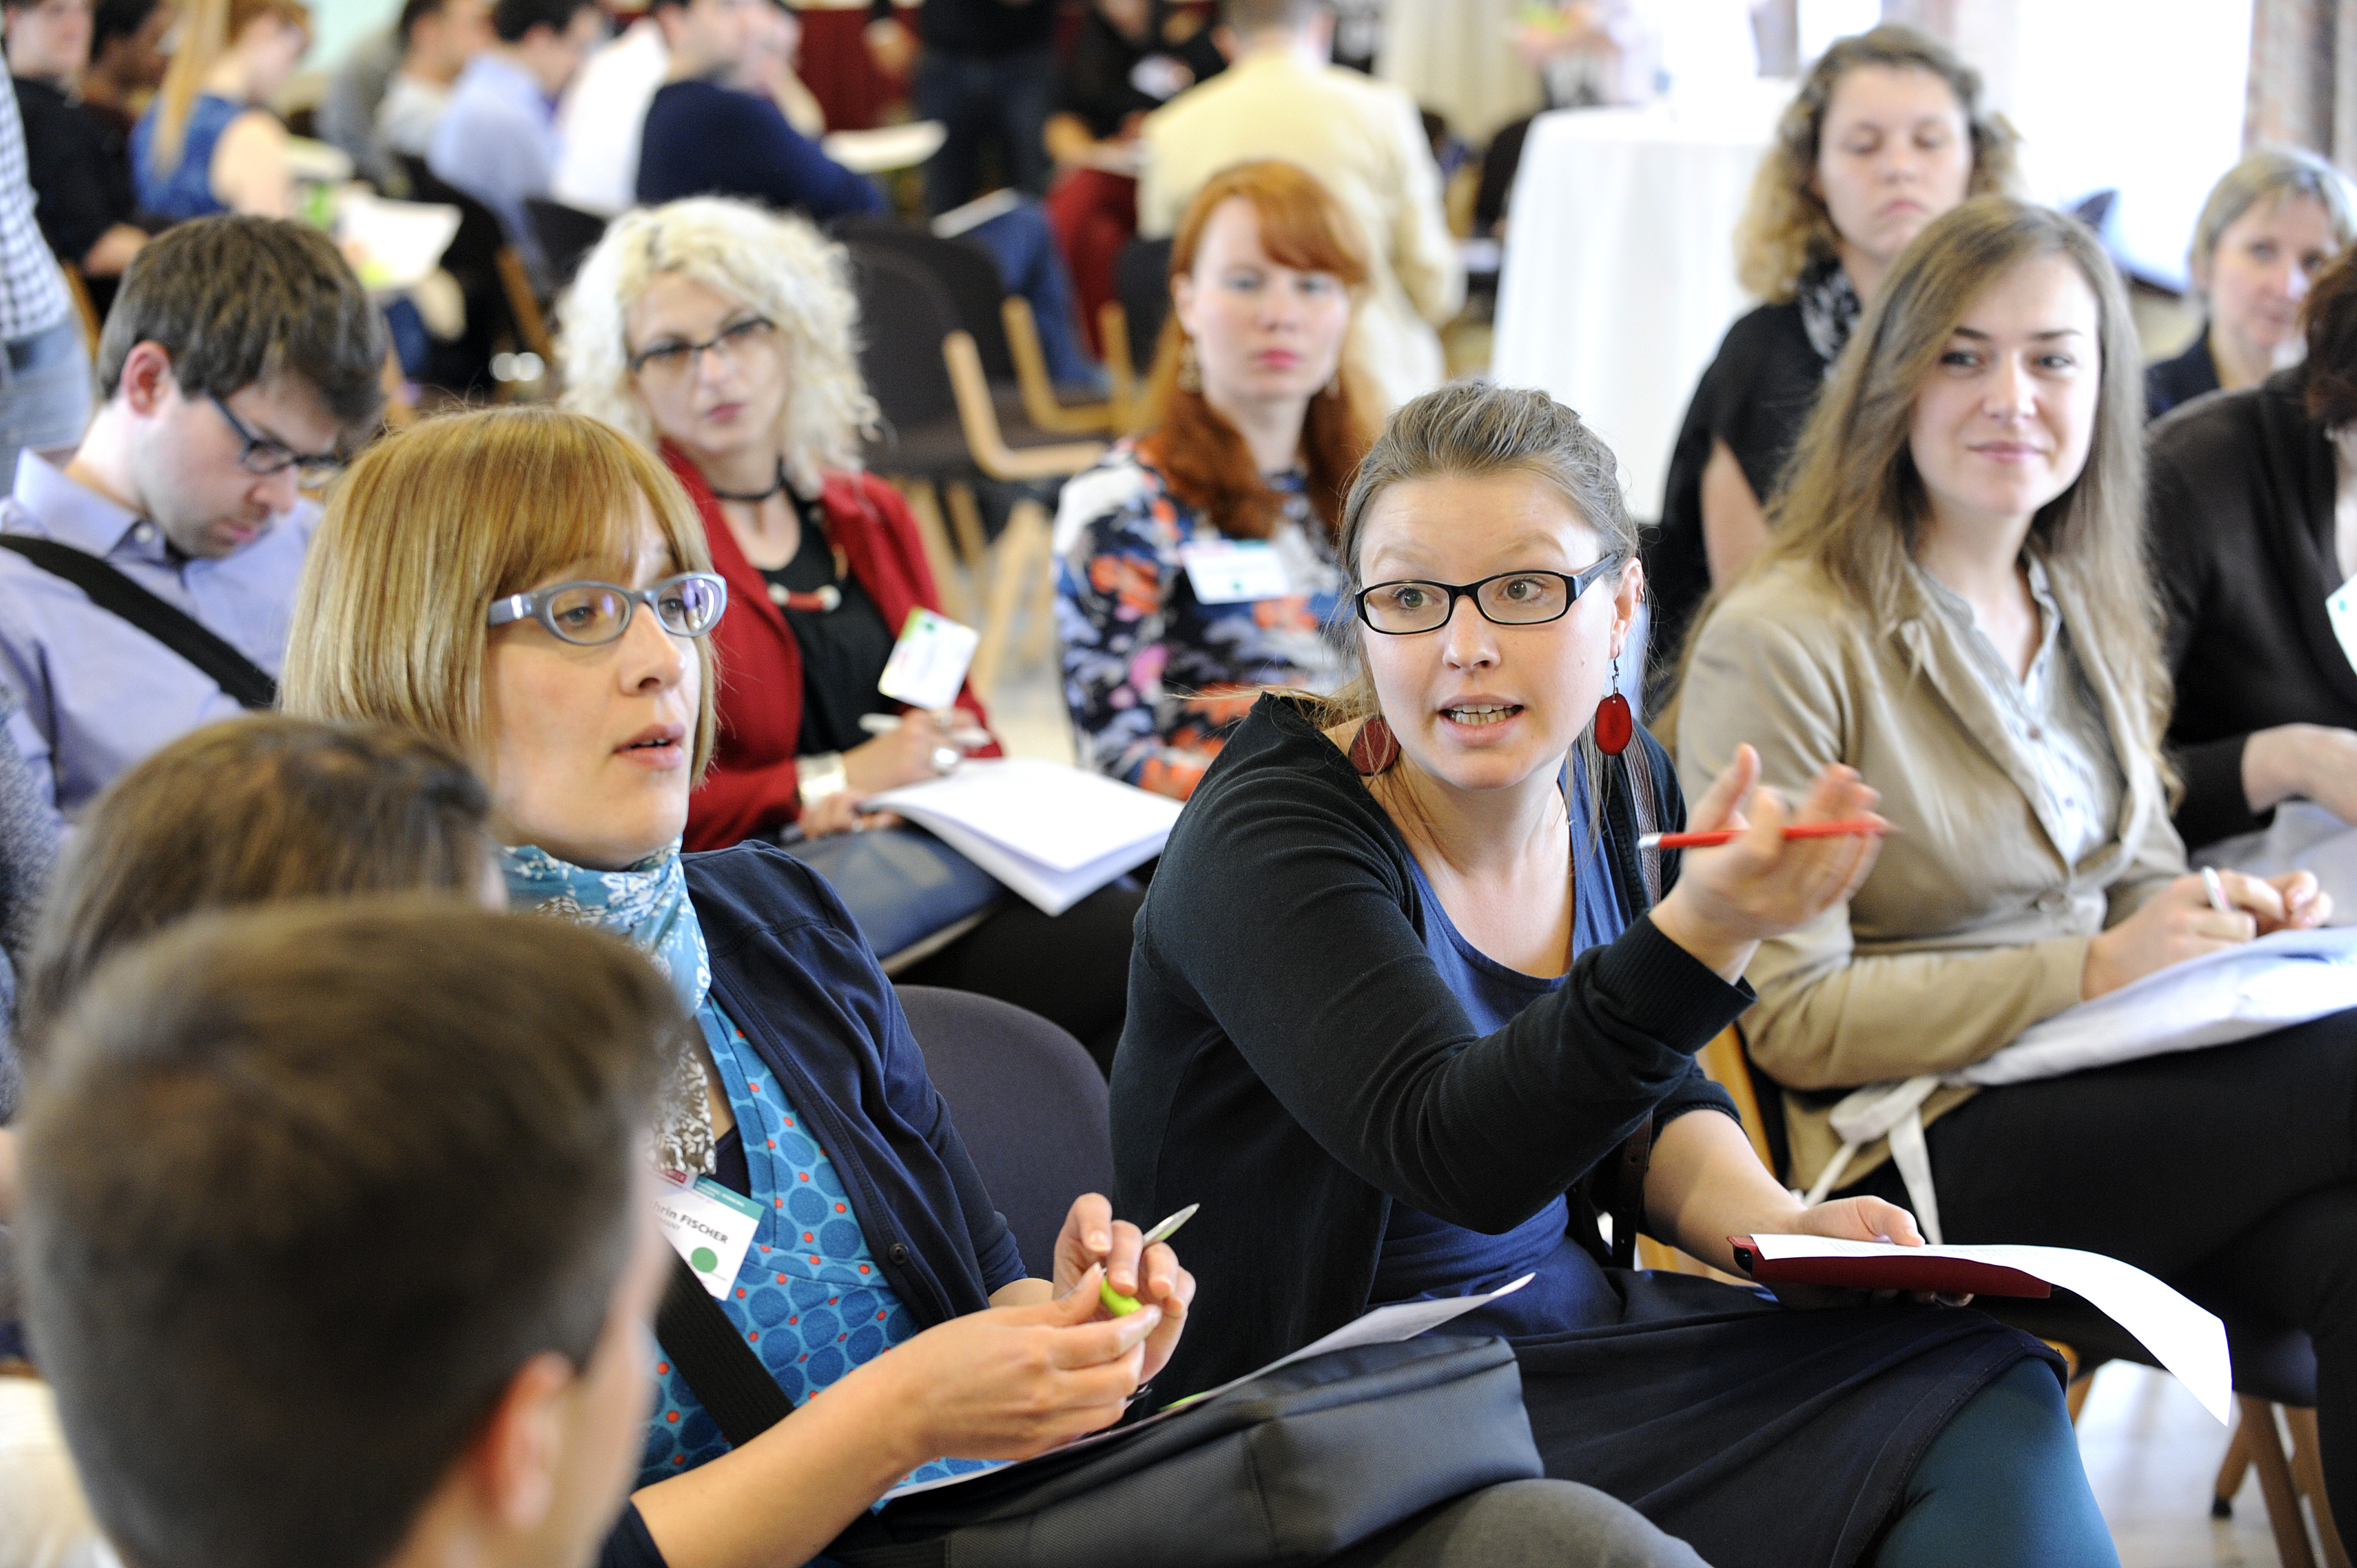 Structured Dialogue conference